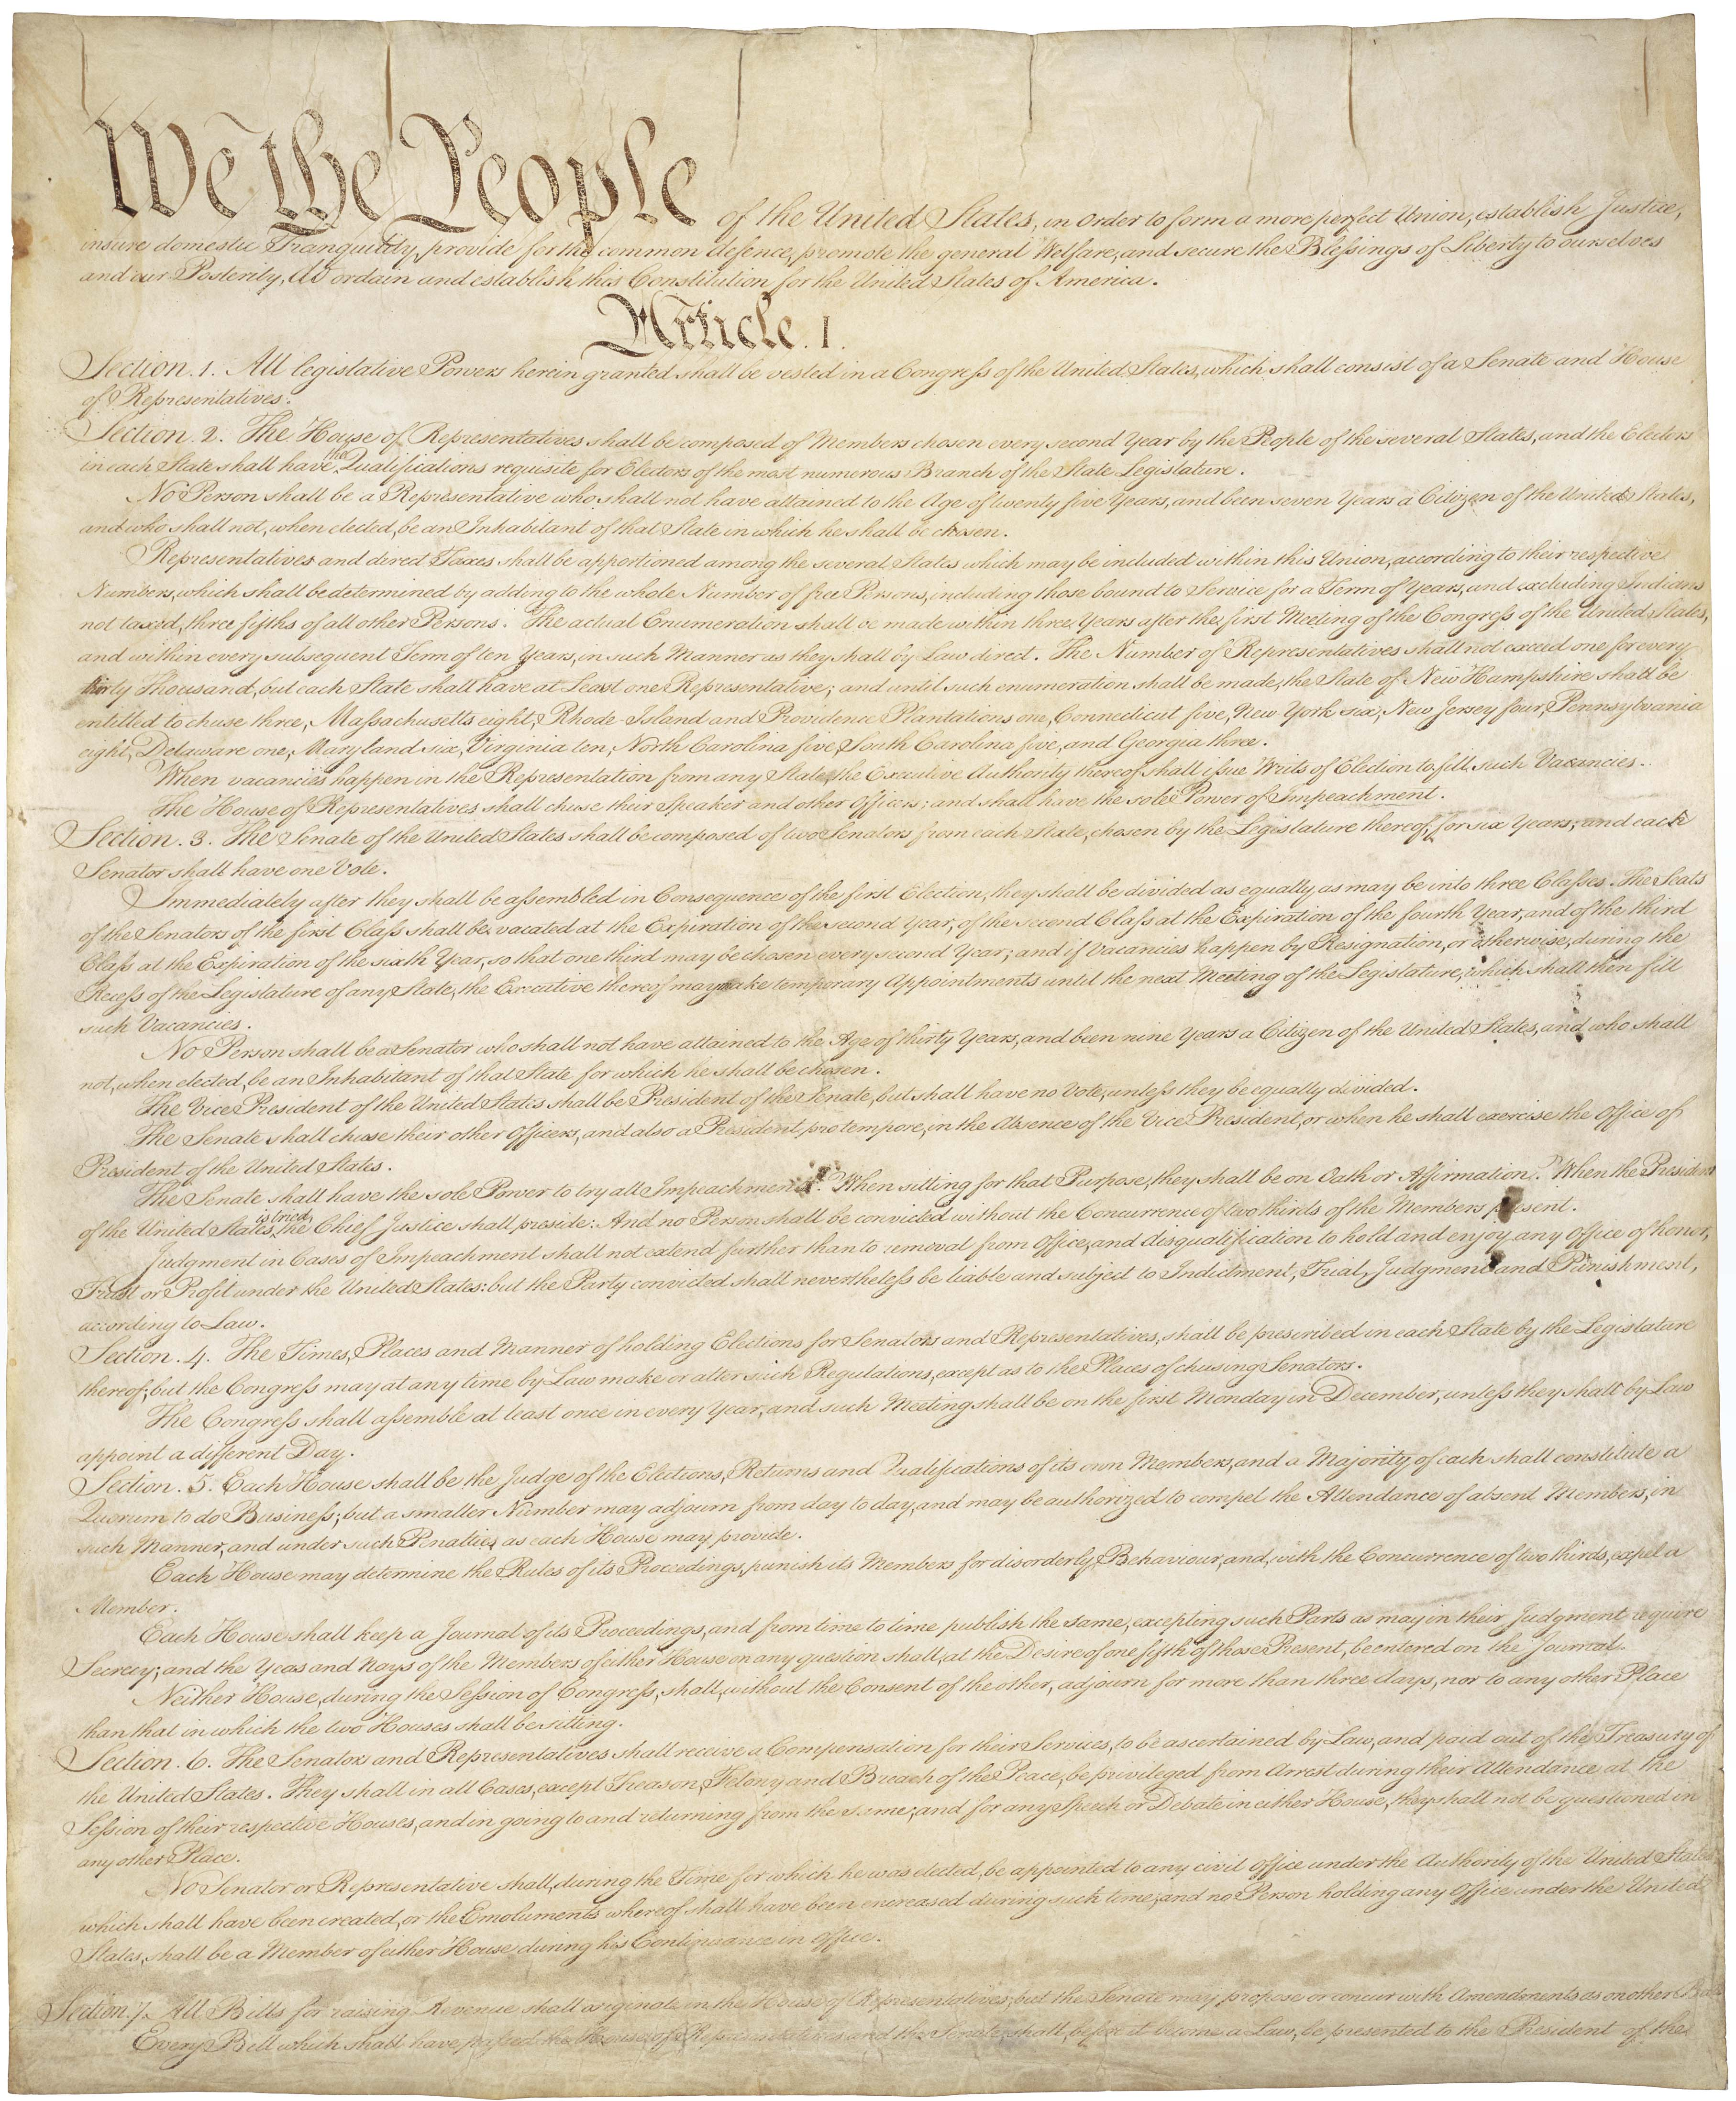 Page 1 U.S. Constitution (image of original)